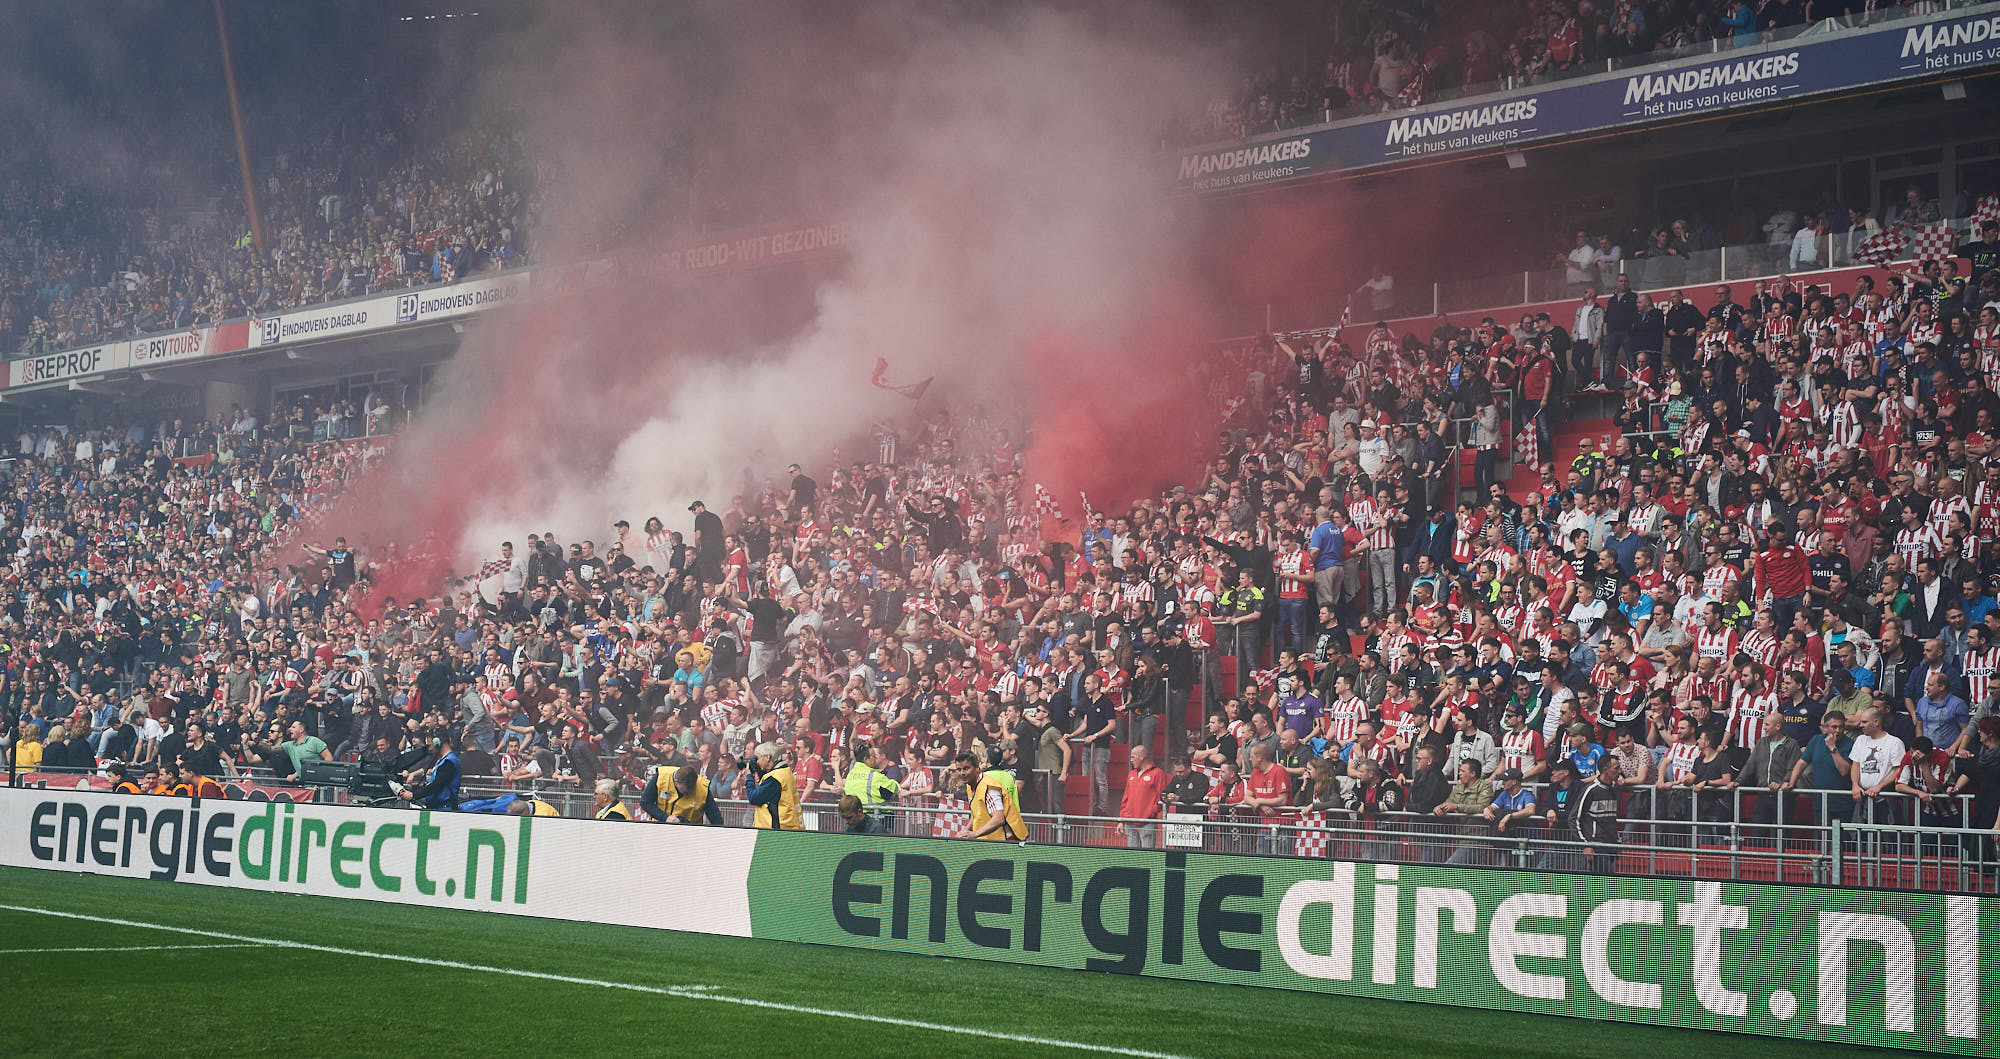 Supporters on the fanatic Oost stands light fireworks